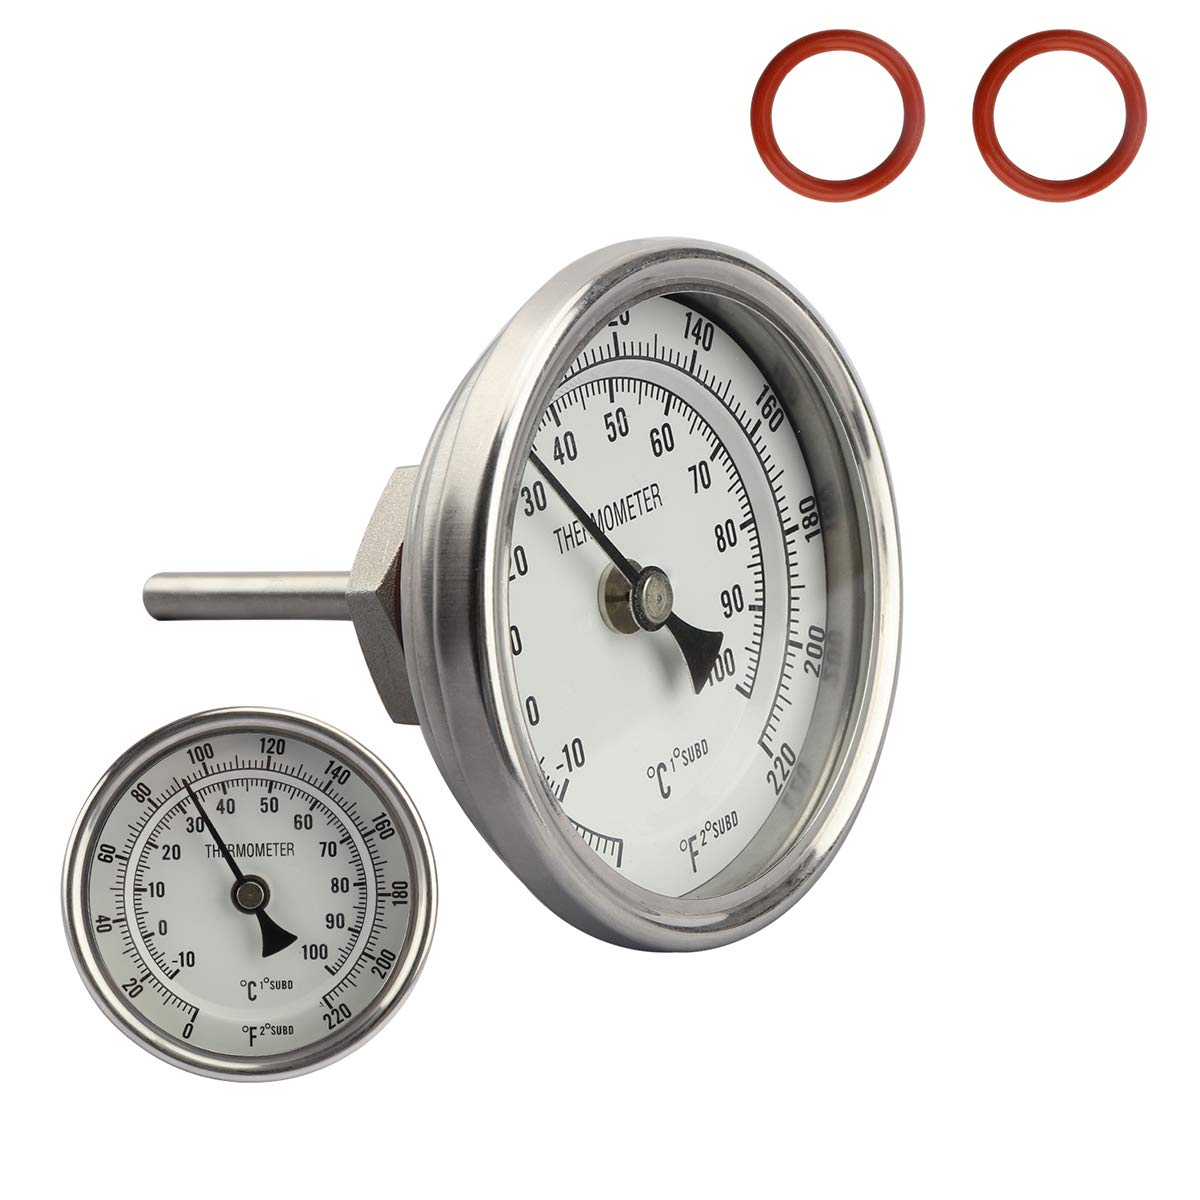 Dial Thermometer 1/2 NPT Thread Pot Thermometer 304 SS Kettle Thermometer with Mounting Assembly for Brewing Beer (3'' Face)